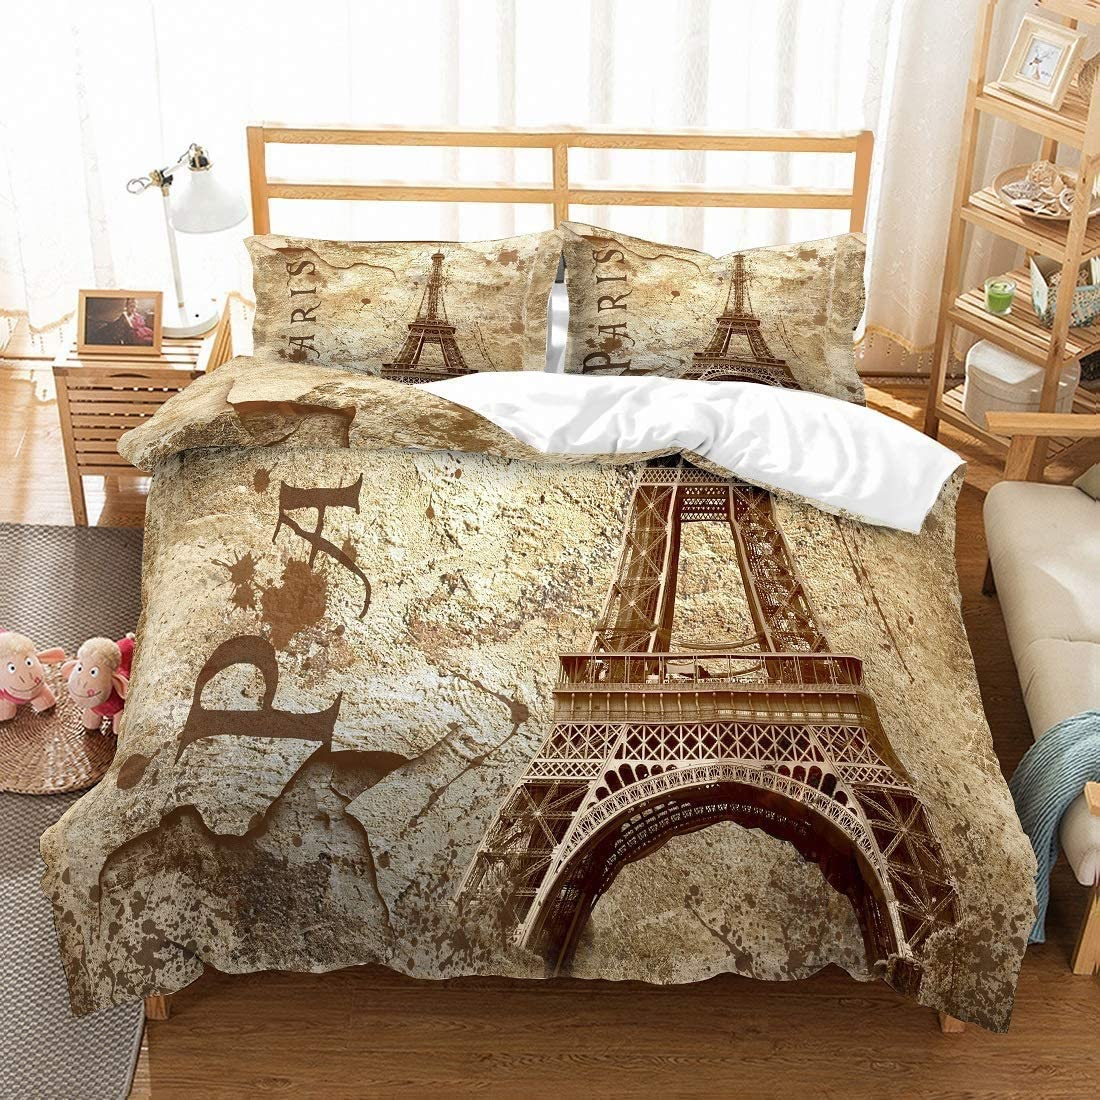 MOUMOUHOME Eiffel Tower Retro Bedding Sets Vintage Ch Size Queen 爆買い新作 ついに再販開始